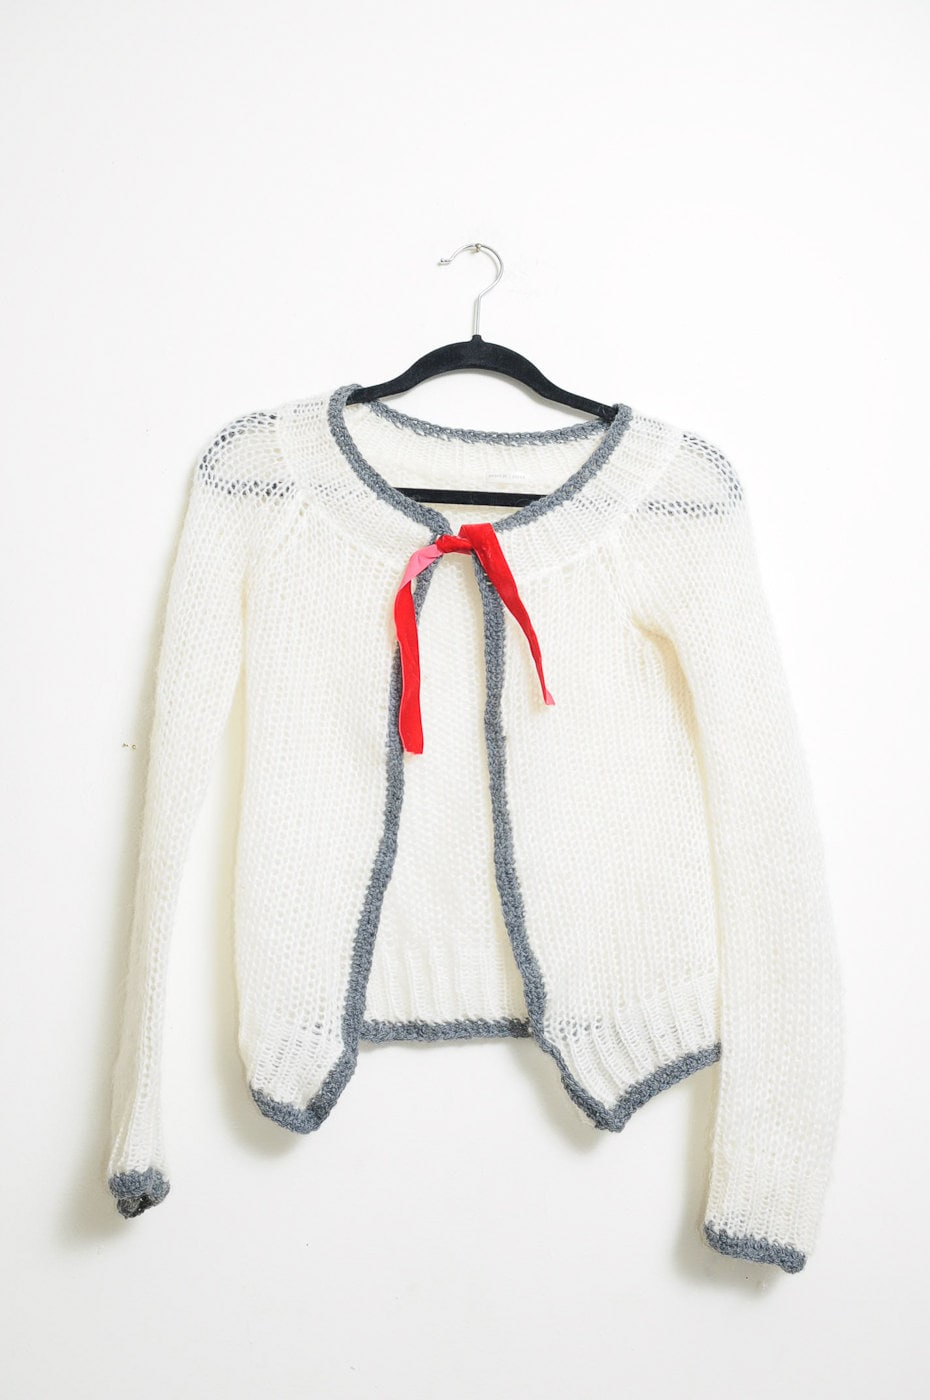 Super Cute Vintage 80s/90s Knit Off White and Grey Cardigan Sweater With Small Red Velvet Ribbon In Front - LipstickDinosaur